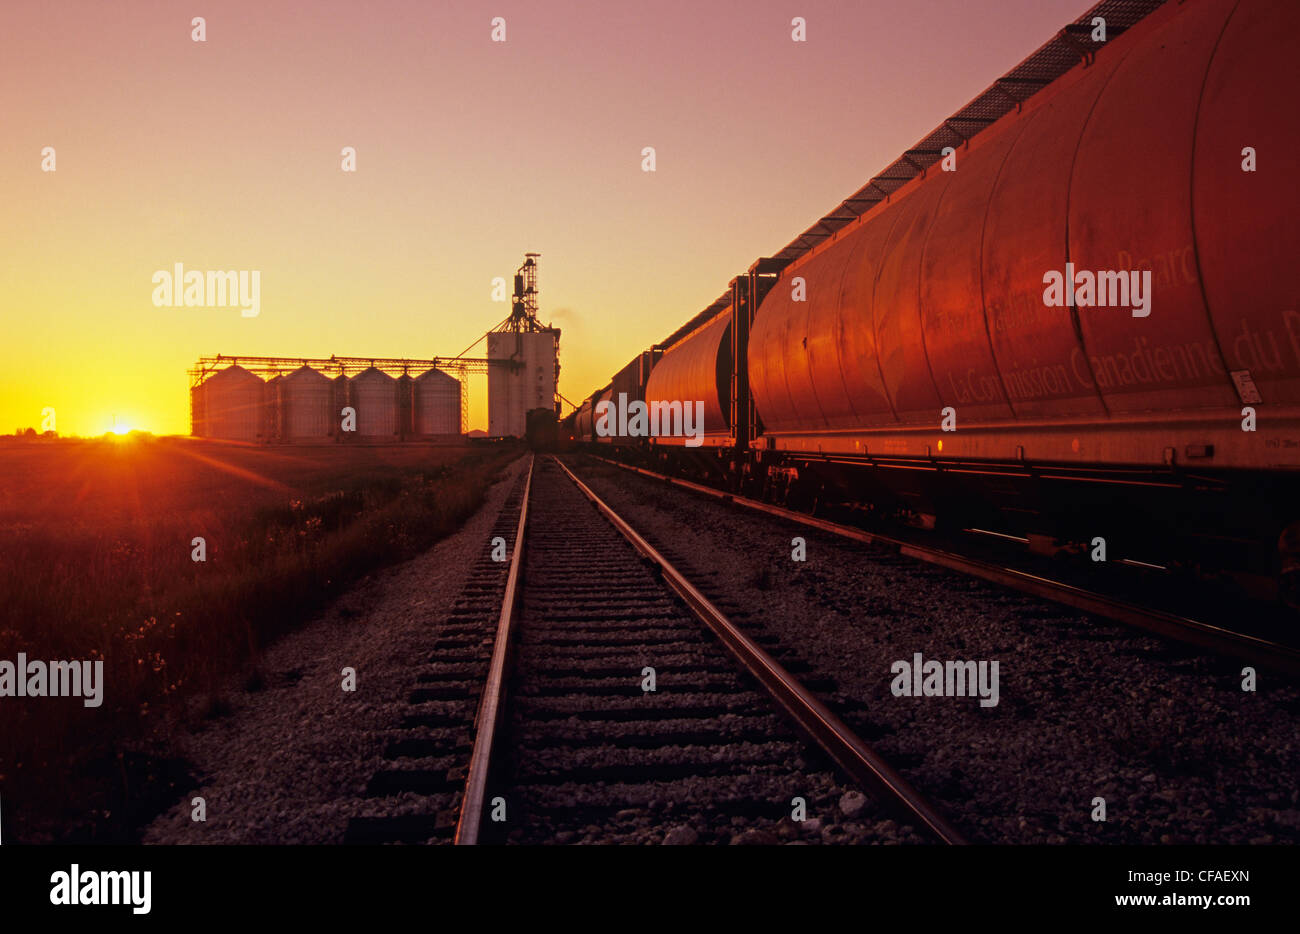 Sunrise, inland grain terminal with grain hopper cars to be loaded in the foreground, Morris, Manitoba, Canada. - Stock Image